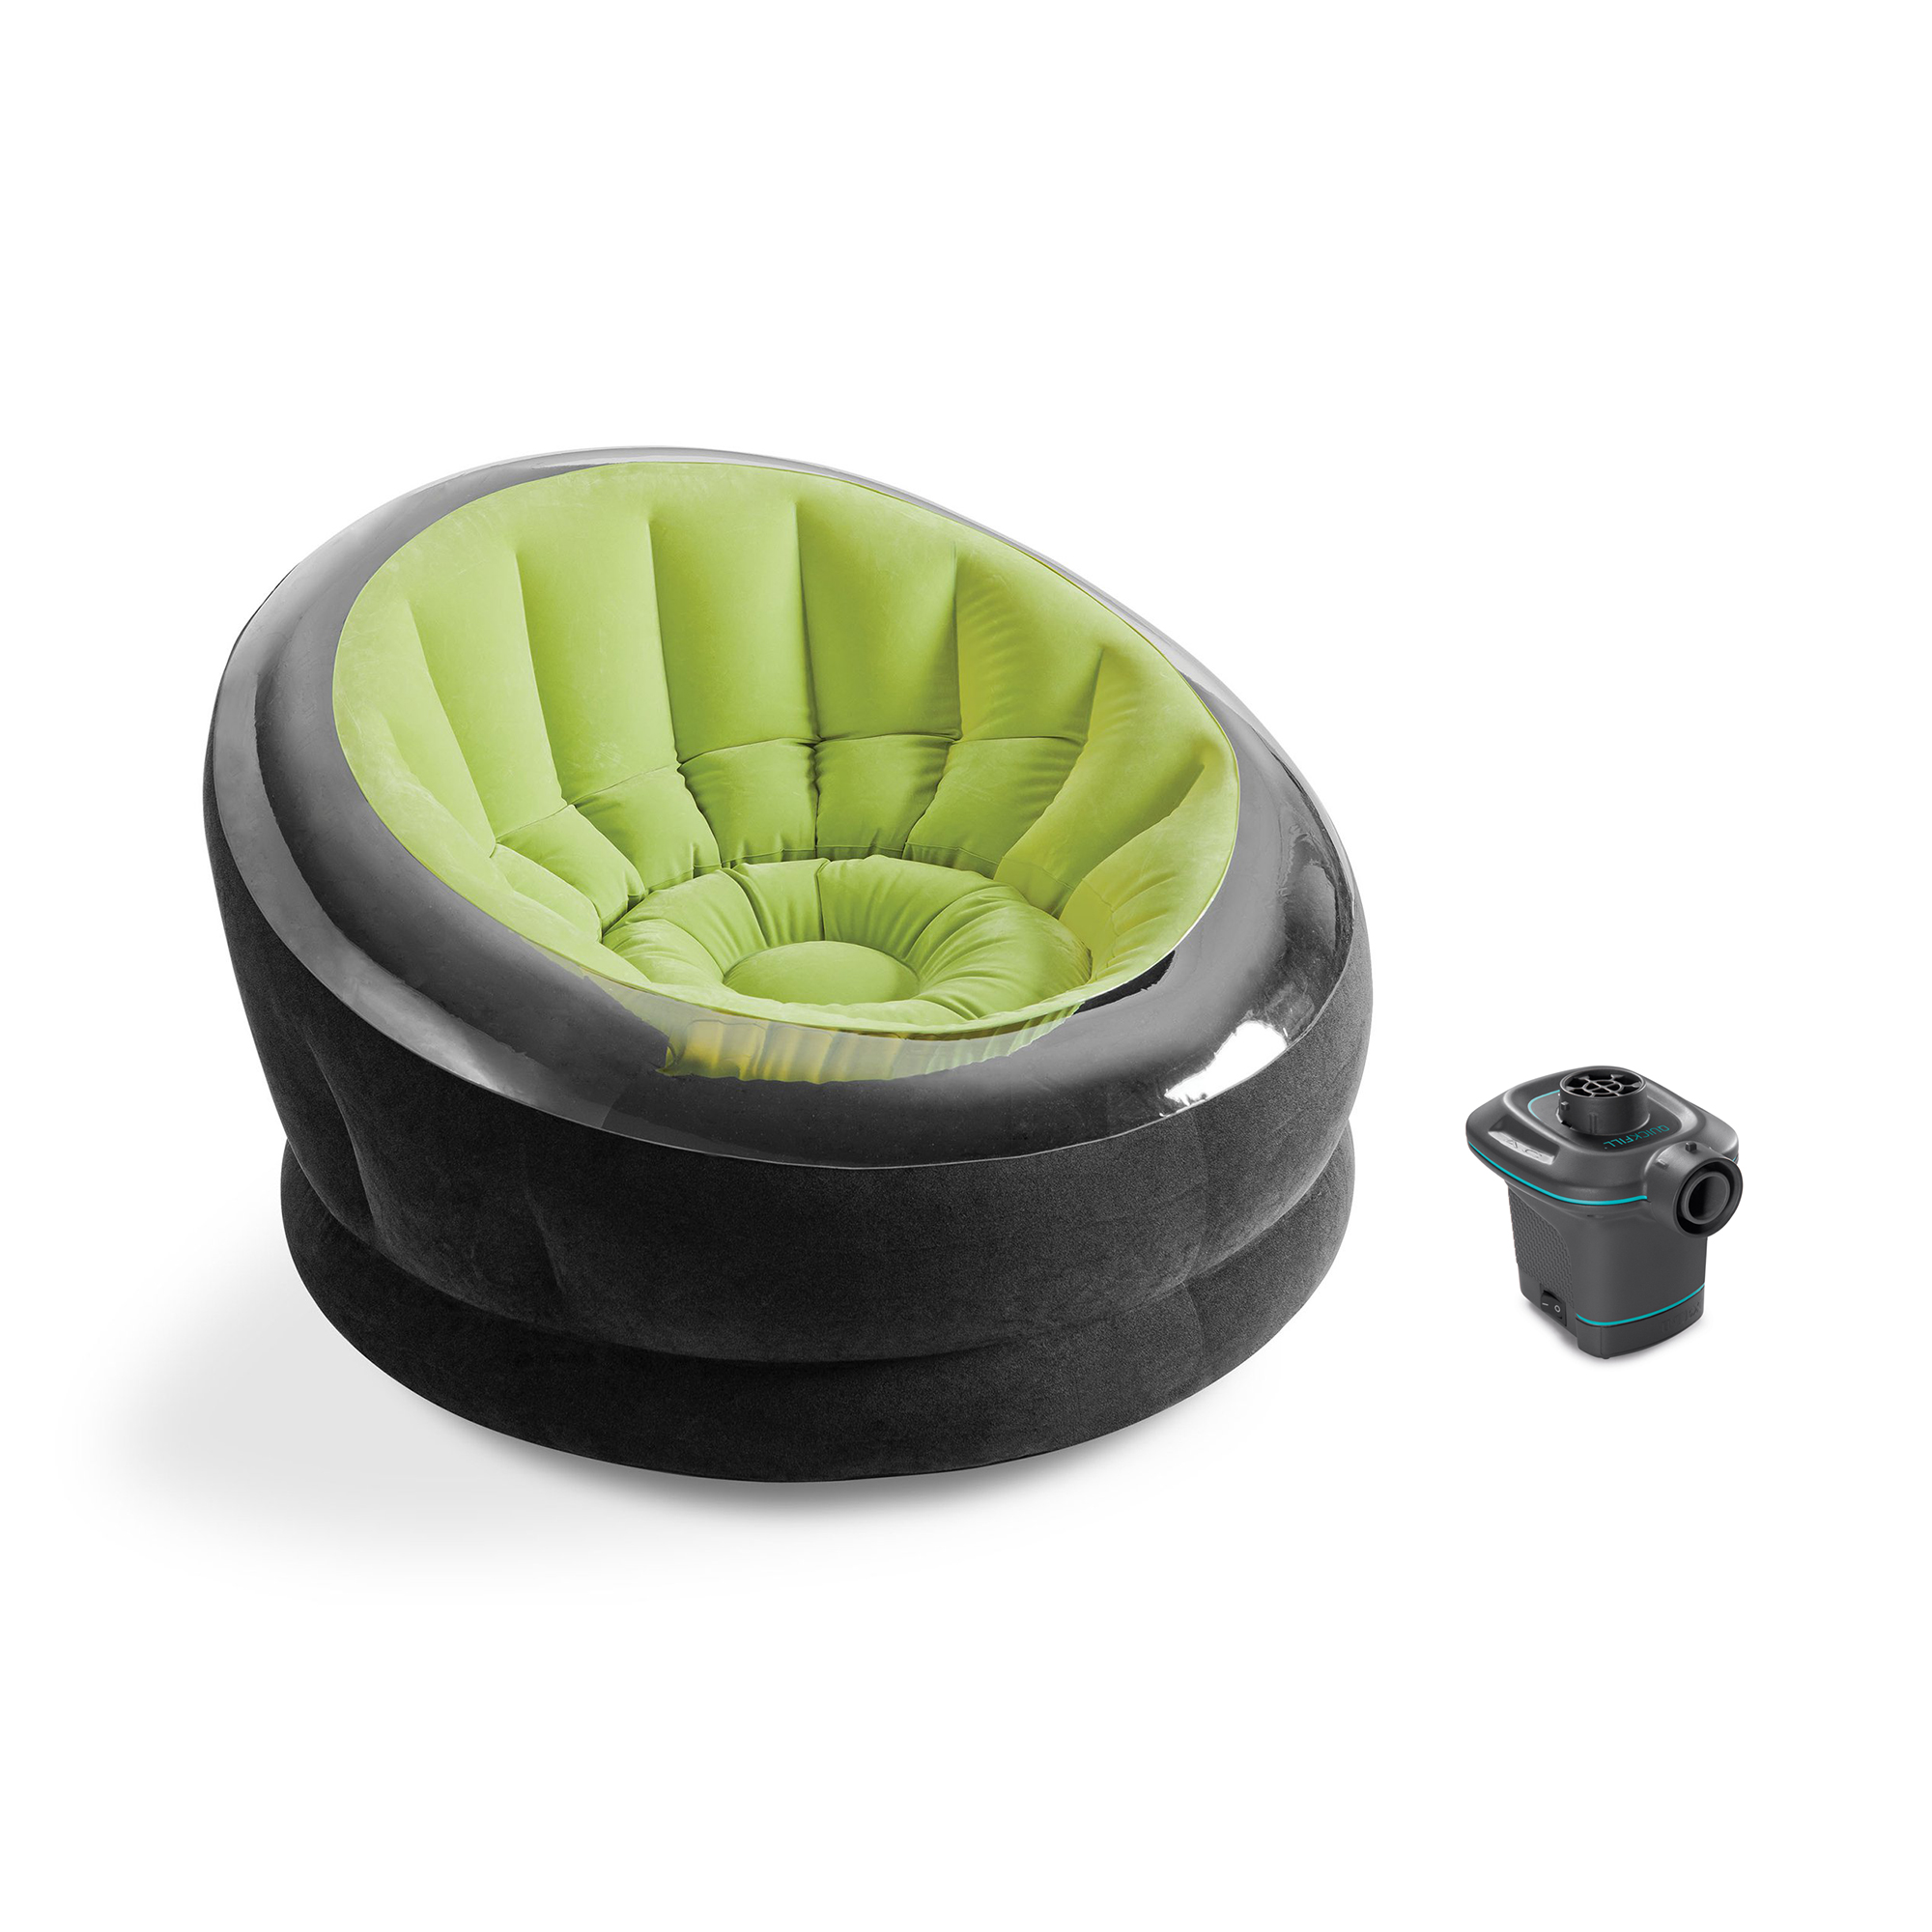 Brilliant Details About Intex Empire Lime Green Inflatable Blow Up Lounge Dorm Camping Chair Air Pump Onthecornerstone Fun Painted Chair Ideas Images Onthecornerstoneorg